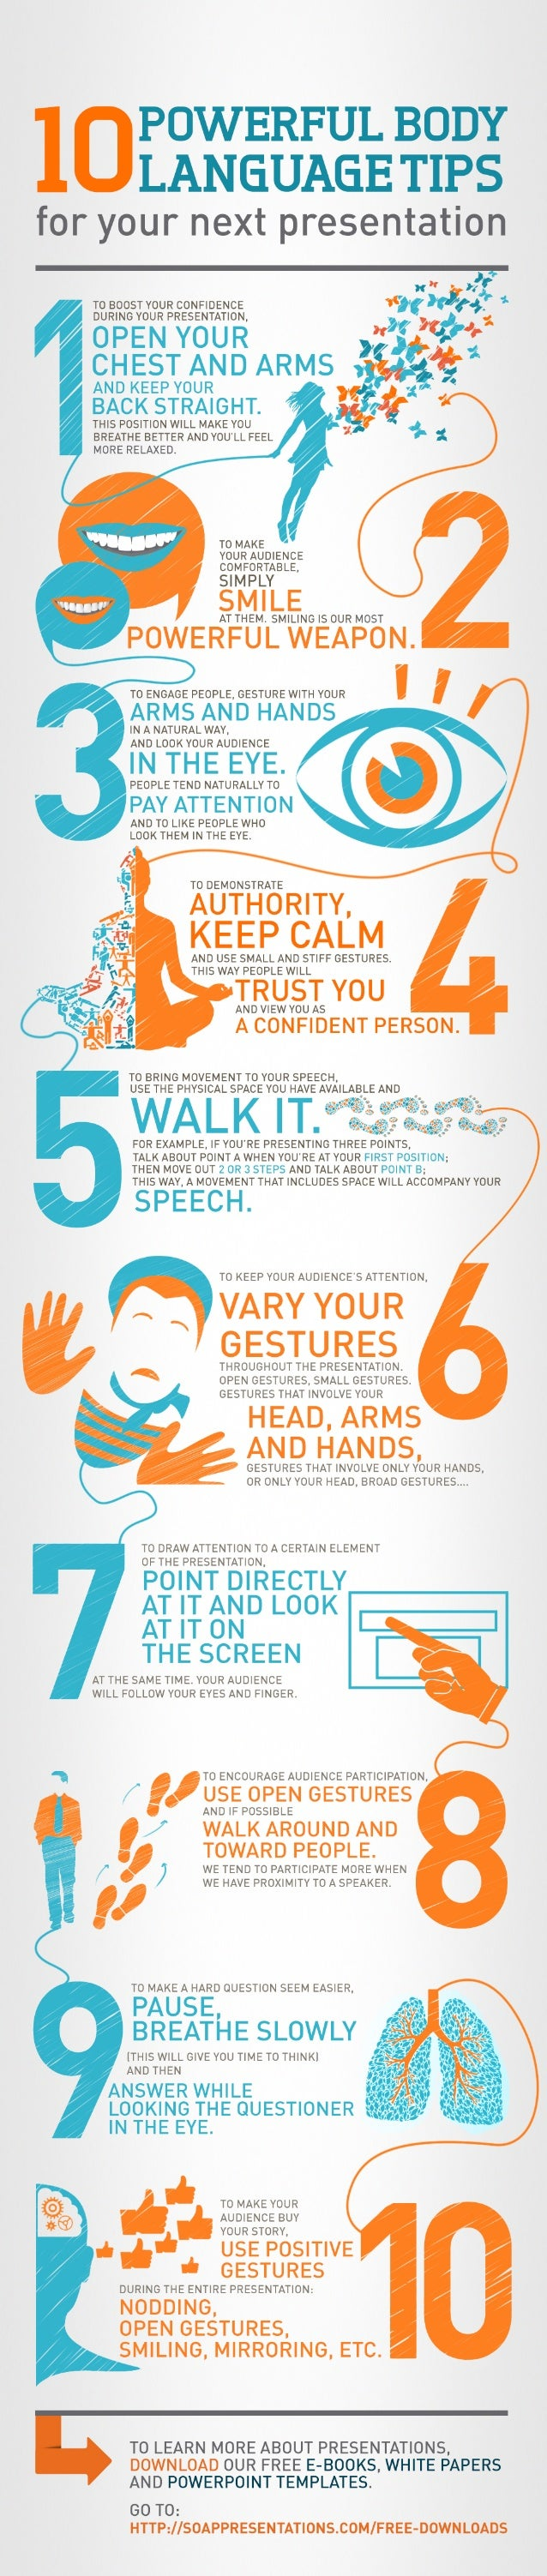 body language secrets 10 powerful tips your next presentation tips tipsographic